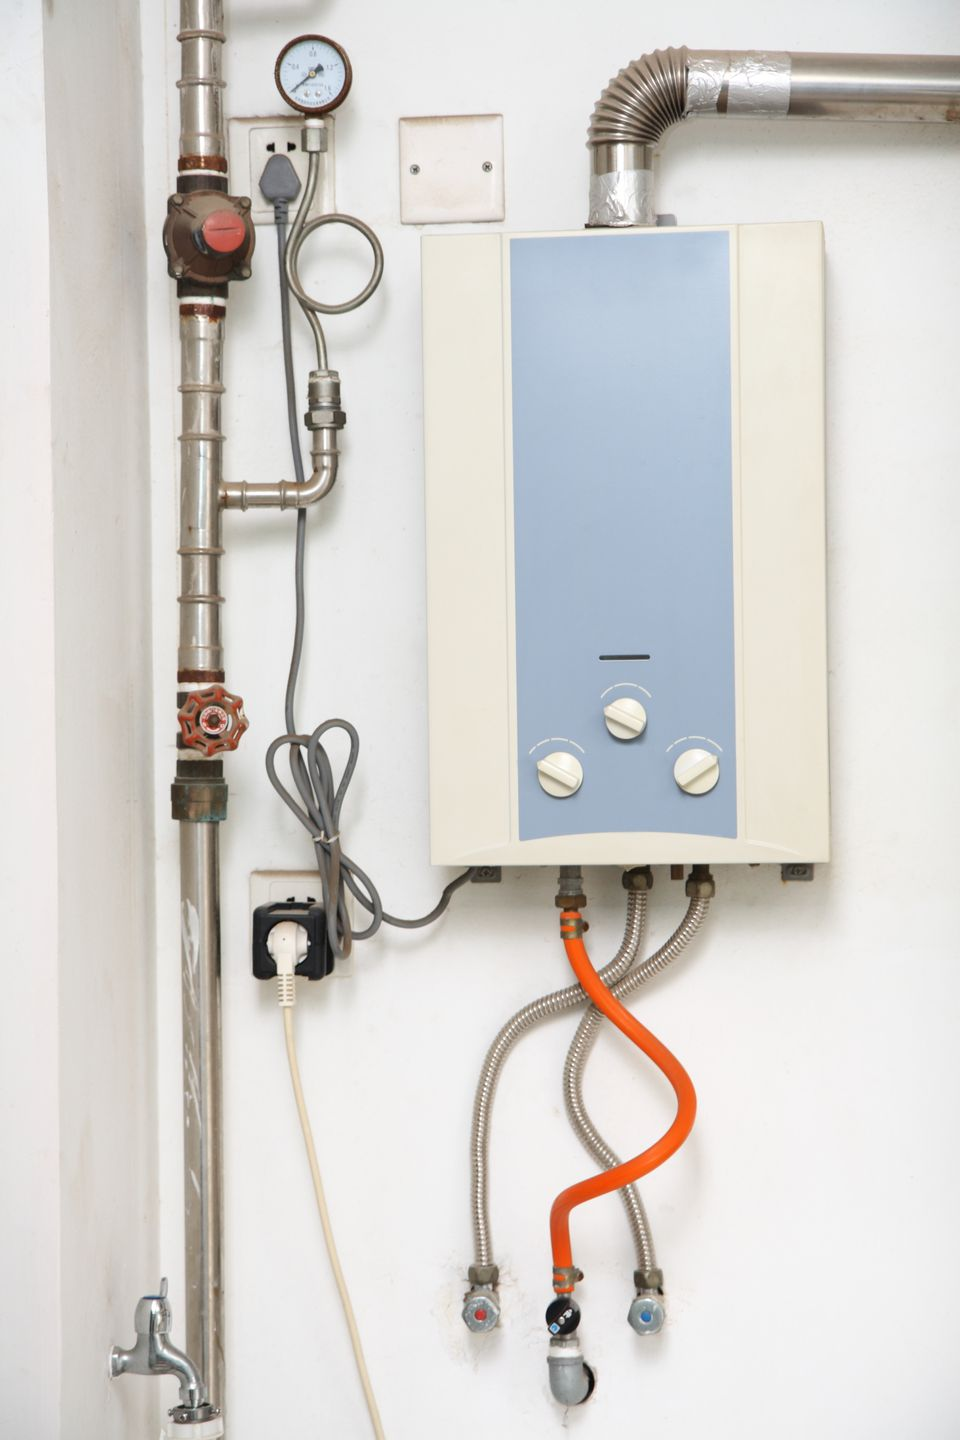 How to Repair a Tankless Water Heater